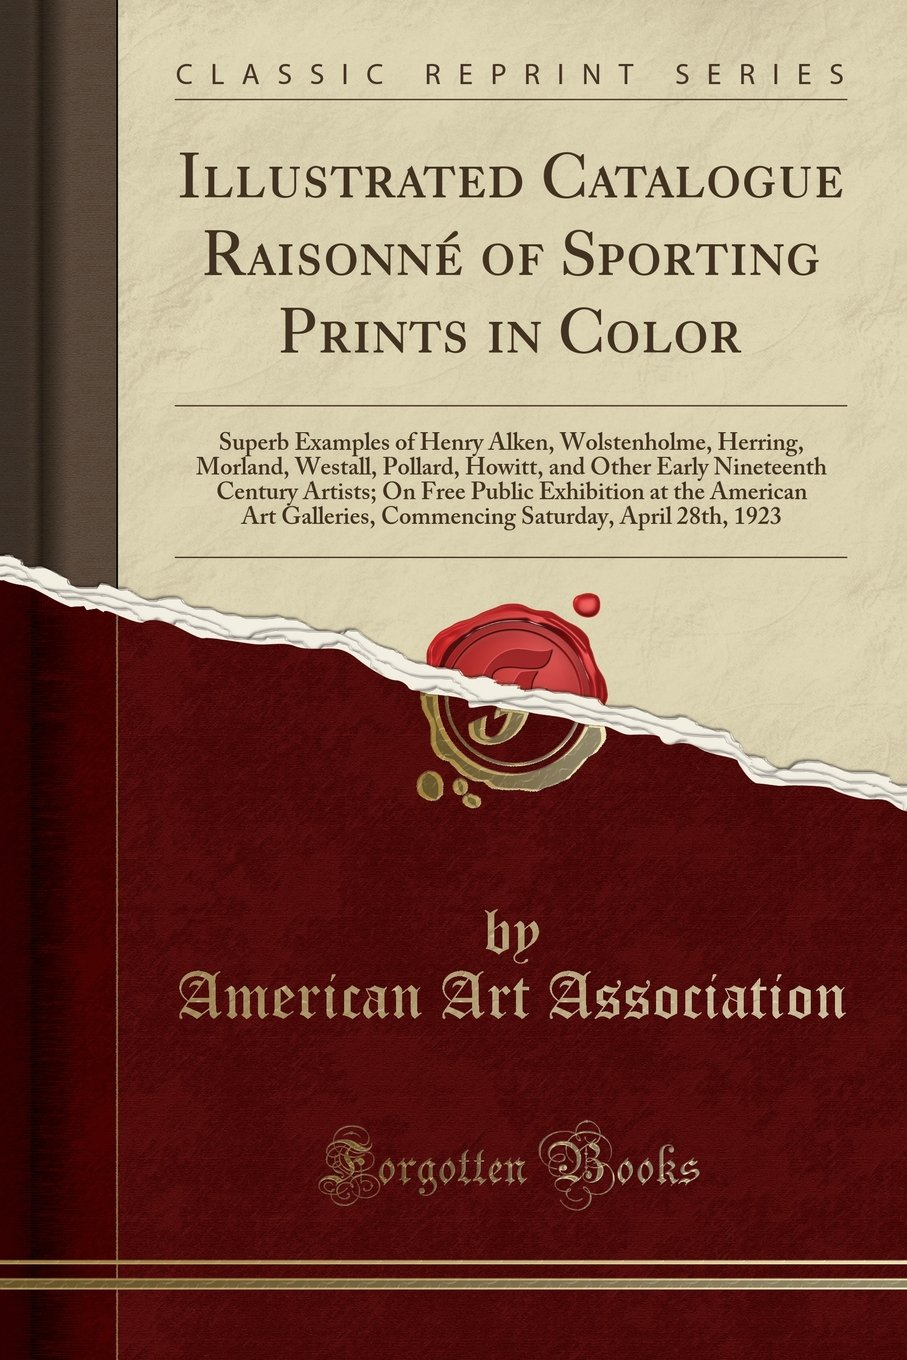 Download Illustrated Catalogue Raisonné of Sporting Prints in Color Superb Examples of Henry Alken, Wolstenholme, Herring, Morland, Westall, Pollard, Howitt. Exhibition at the American Art Galleries, Com PDF